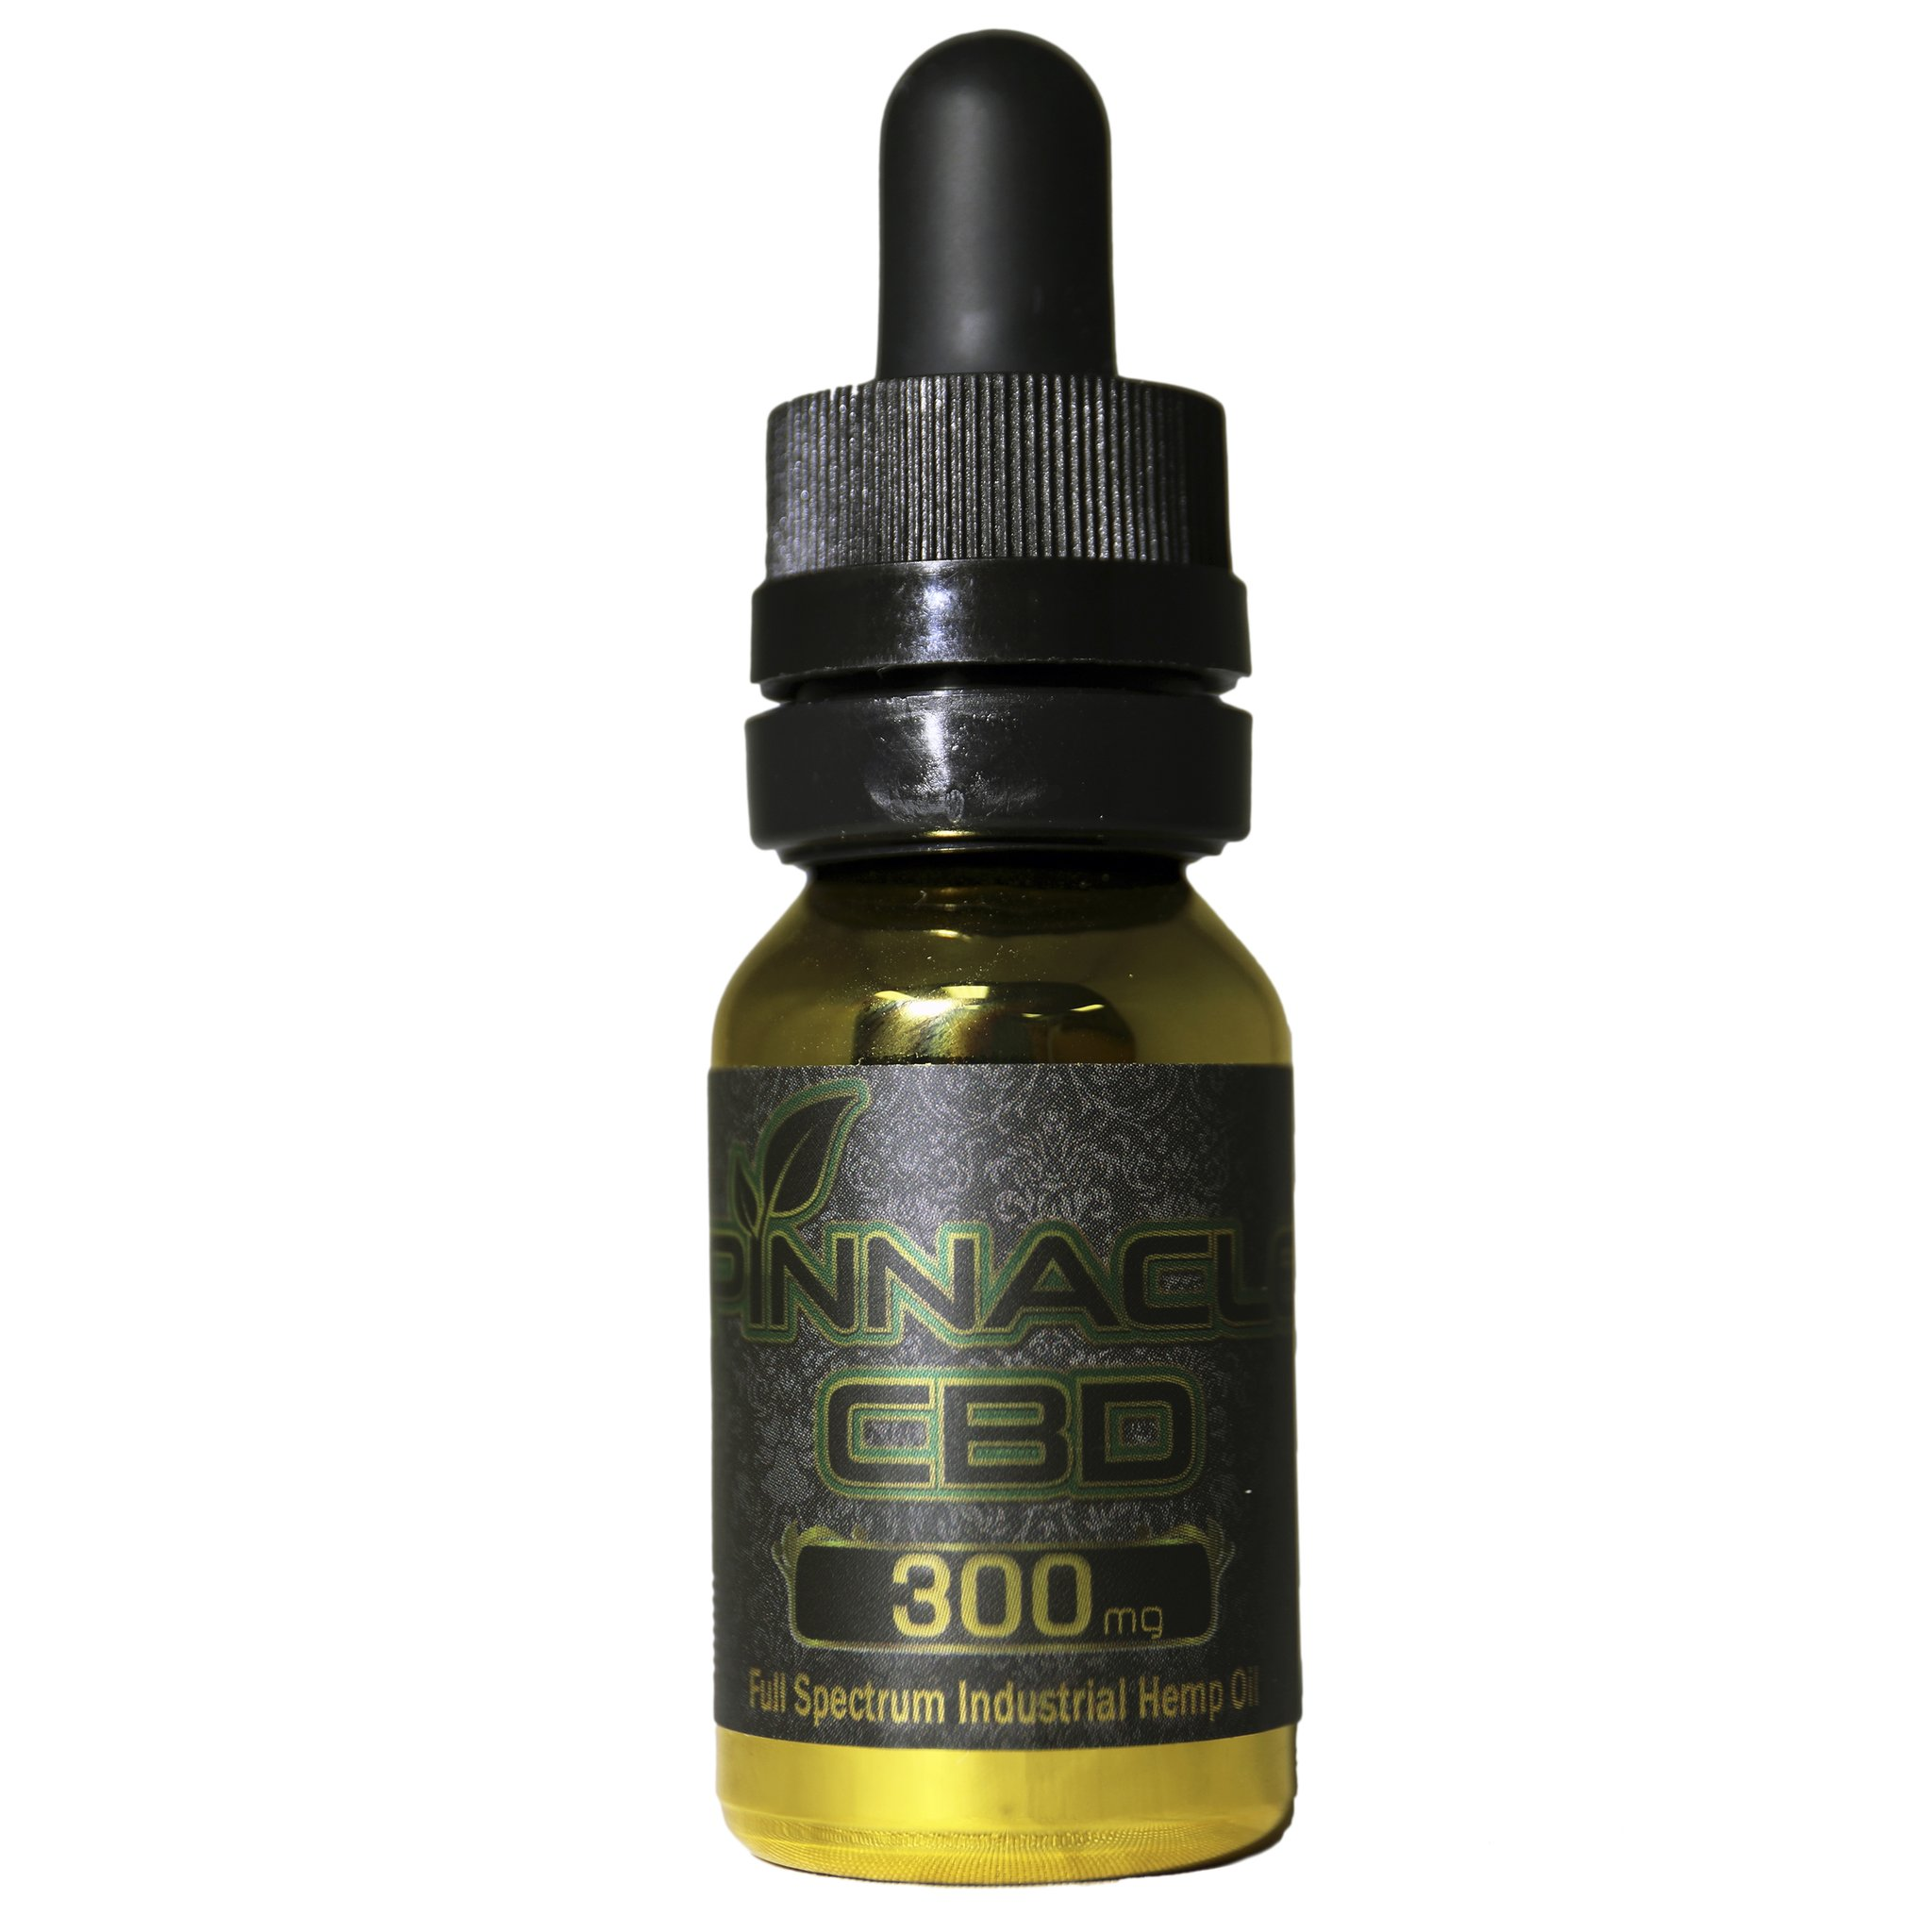 Pinnacle Vapor CBD Oil 300 mg Bottle